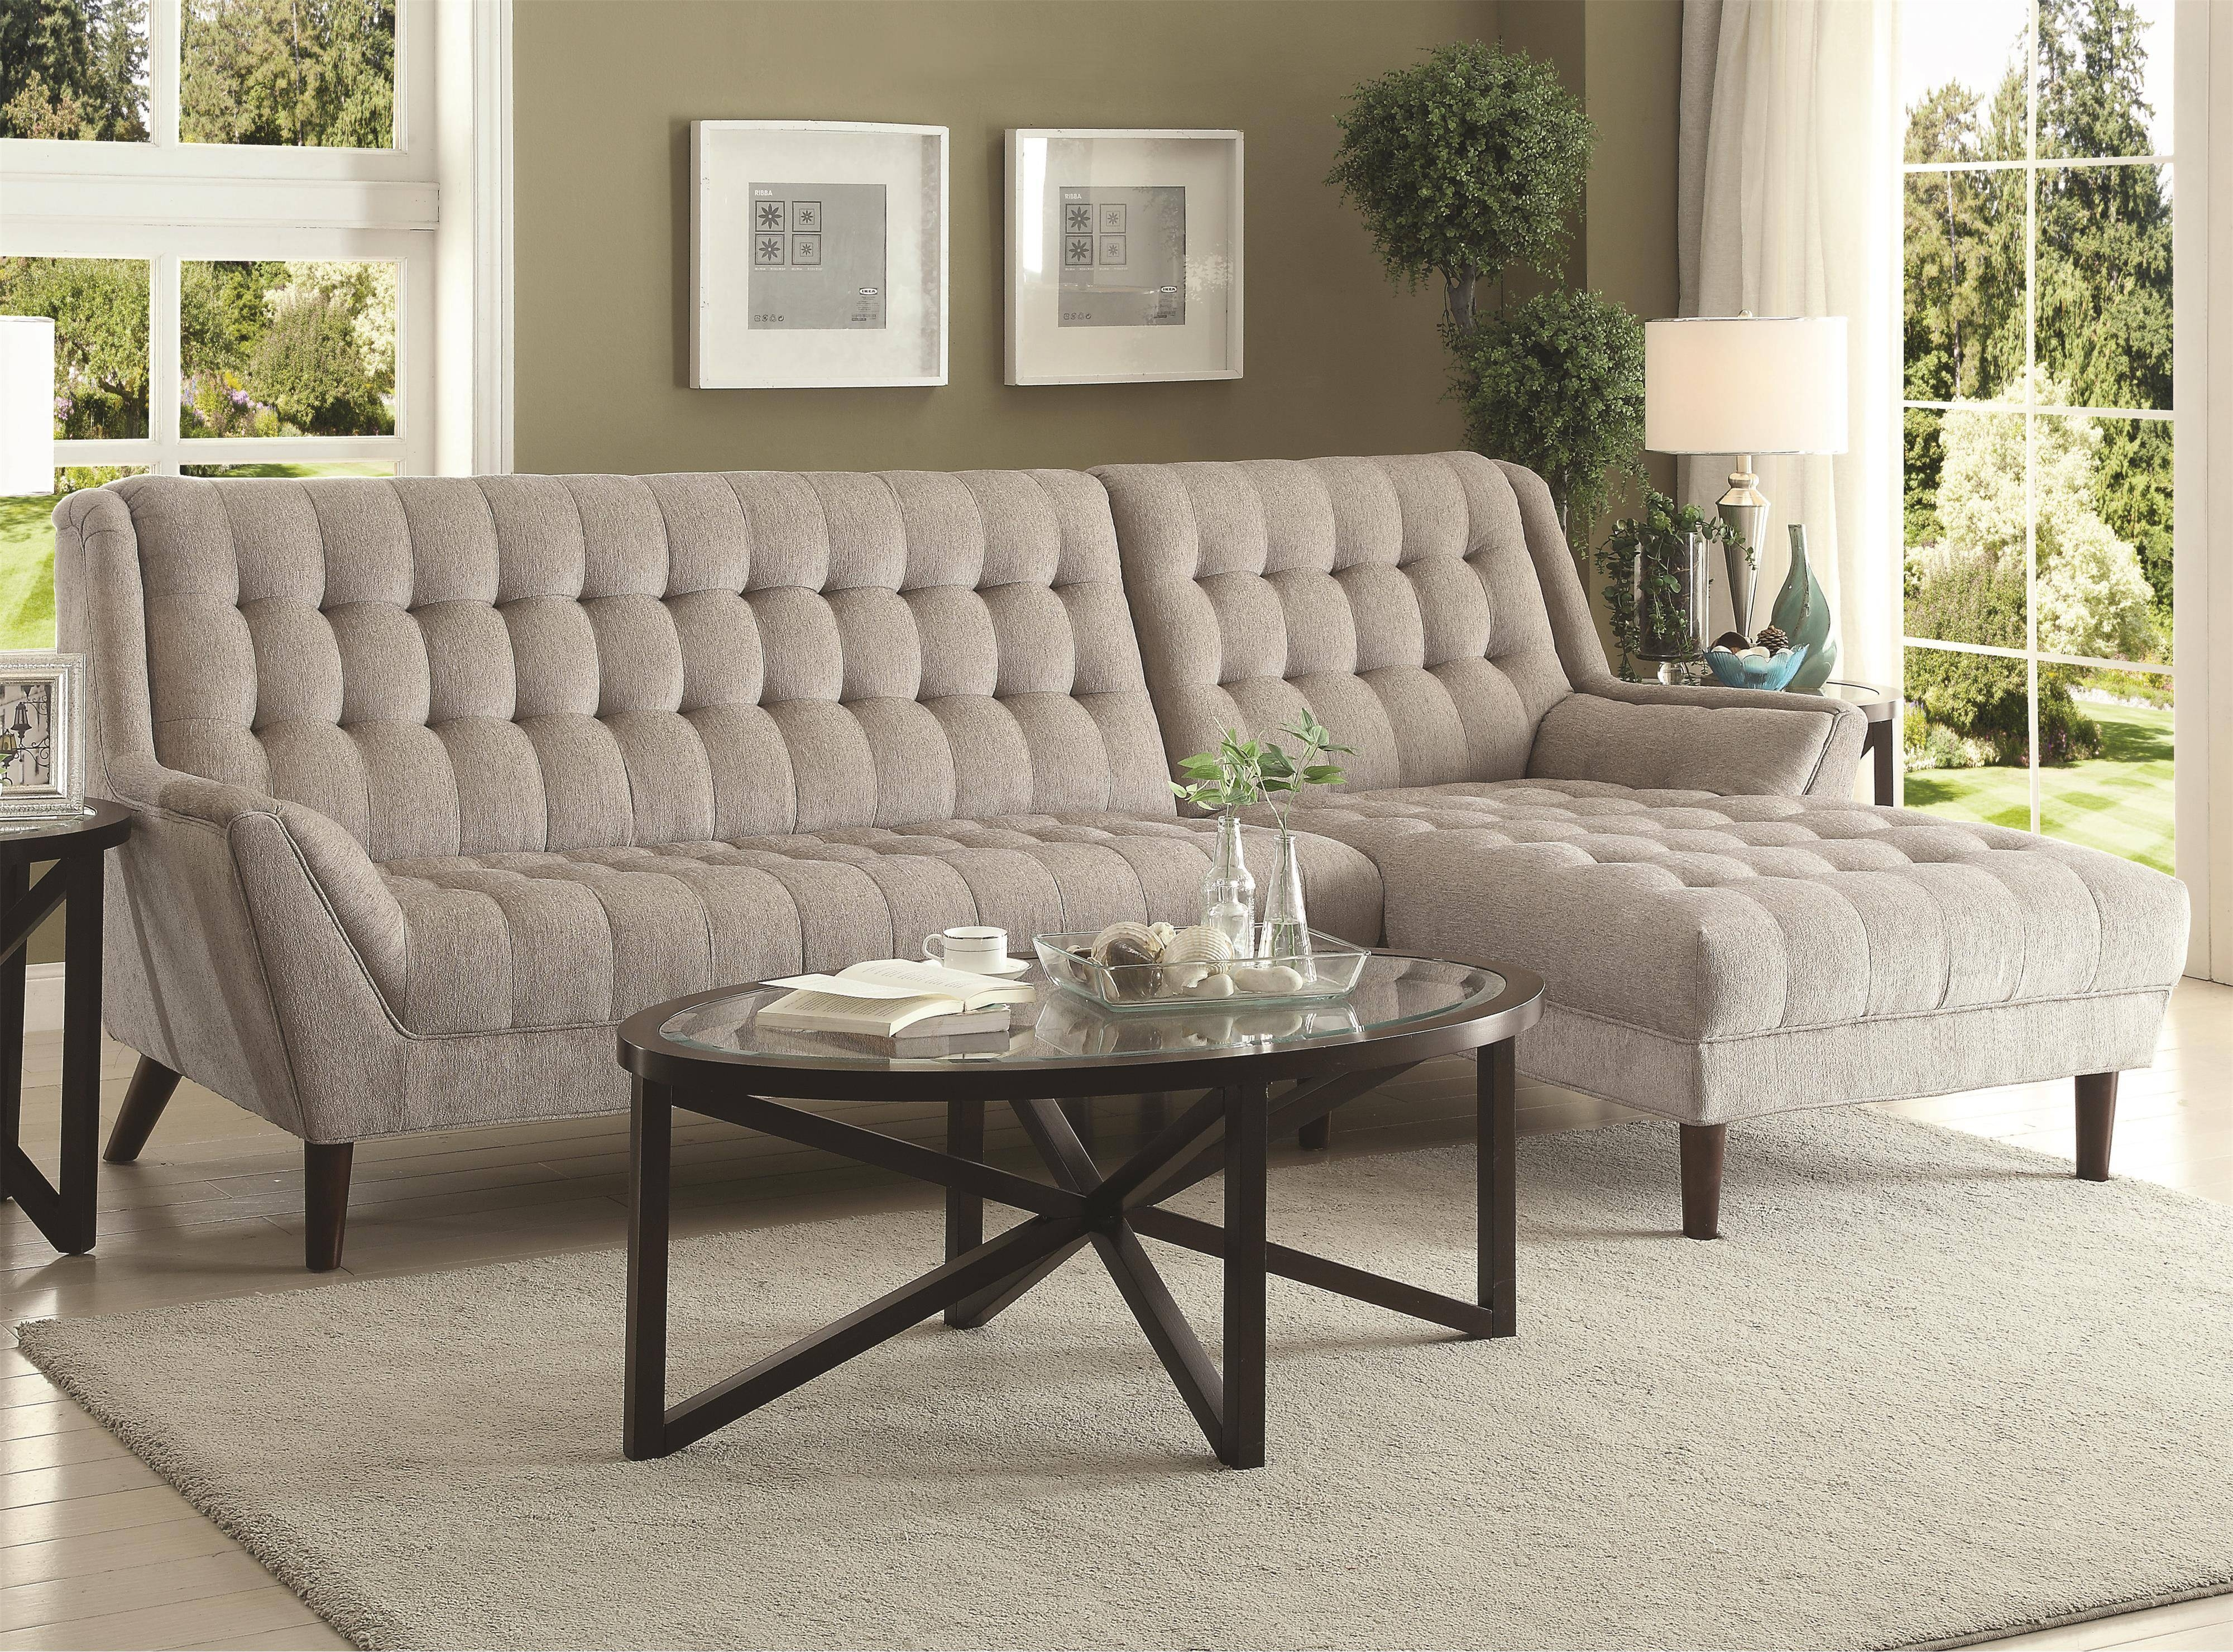 Living Room: Captivating Coaster Sectional Design For Your Lovely with regard to Tufted Sectional Sofa With Chaise (Image 12 of 30)